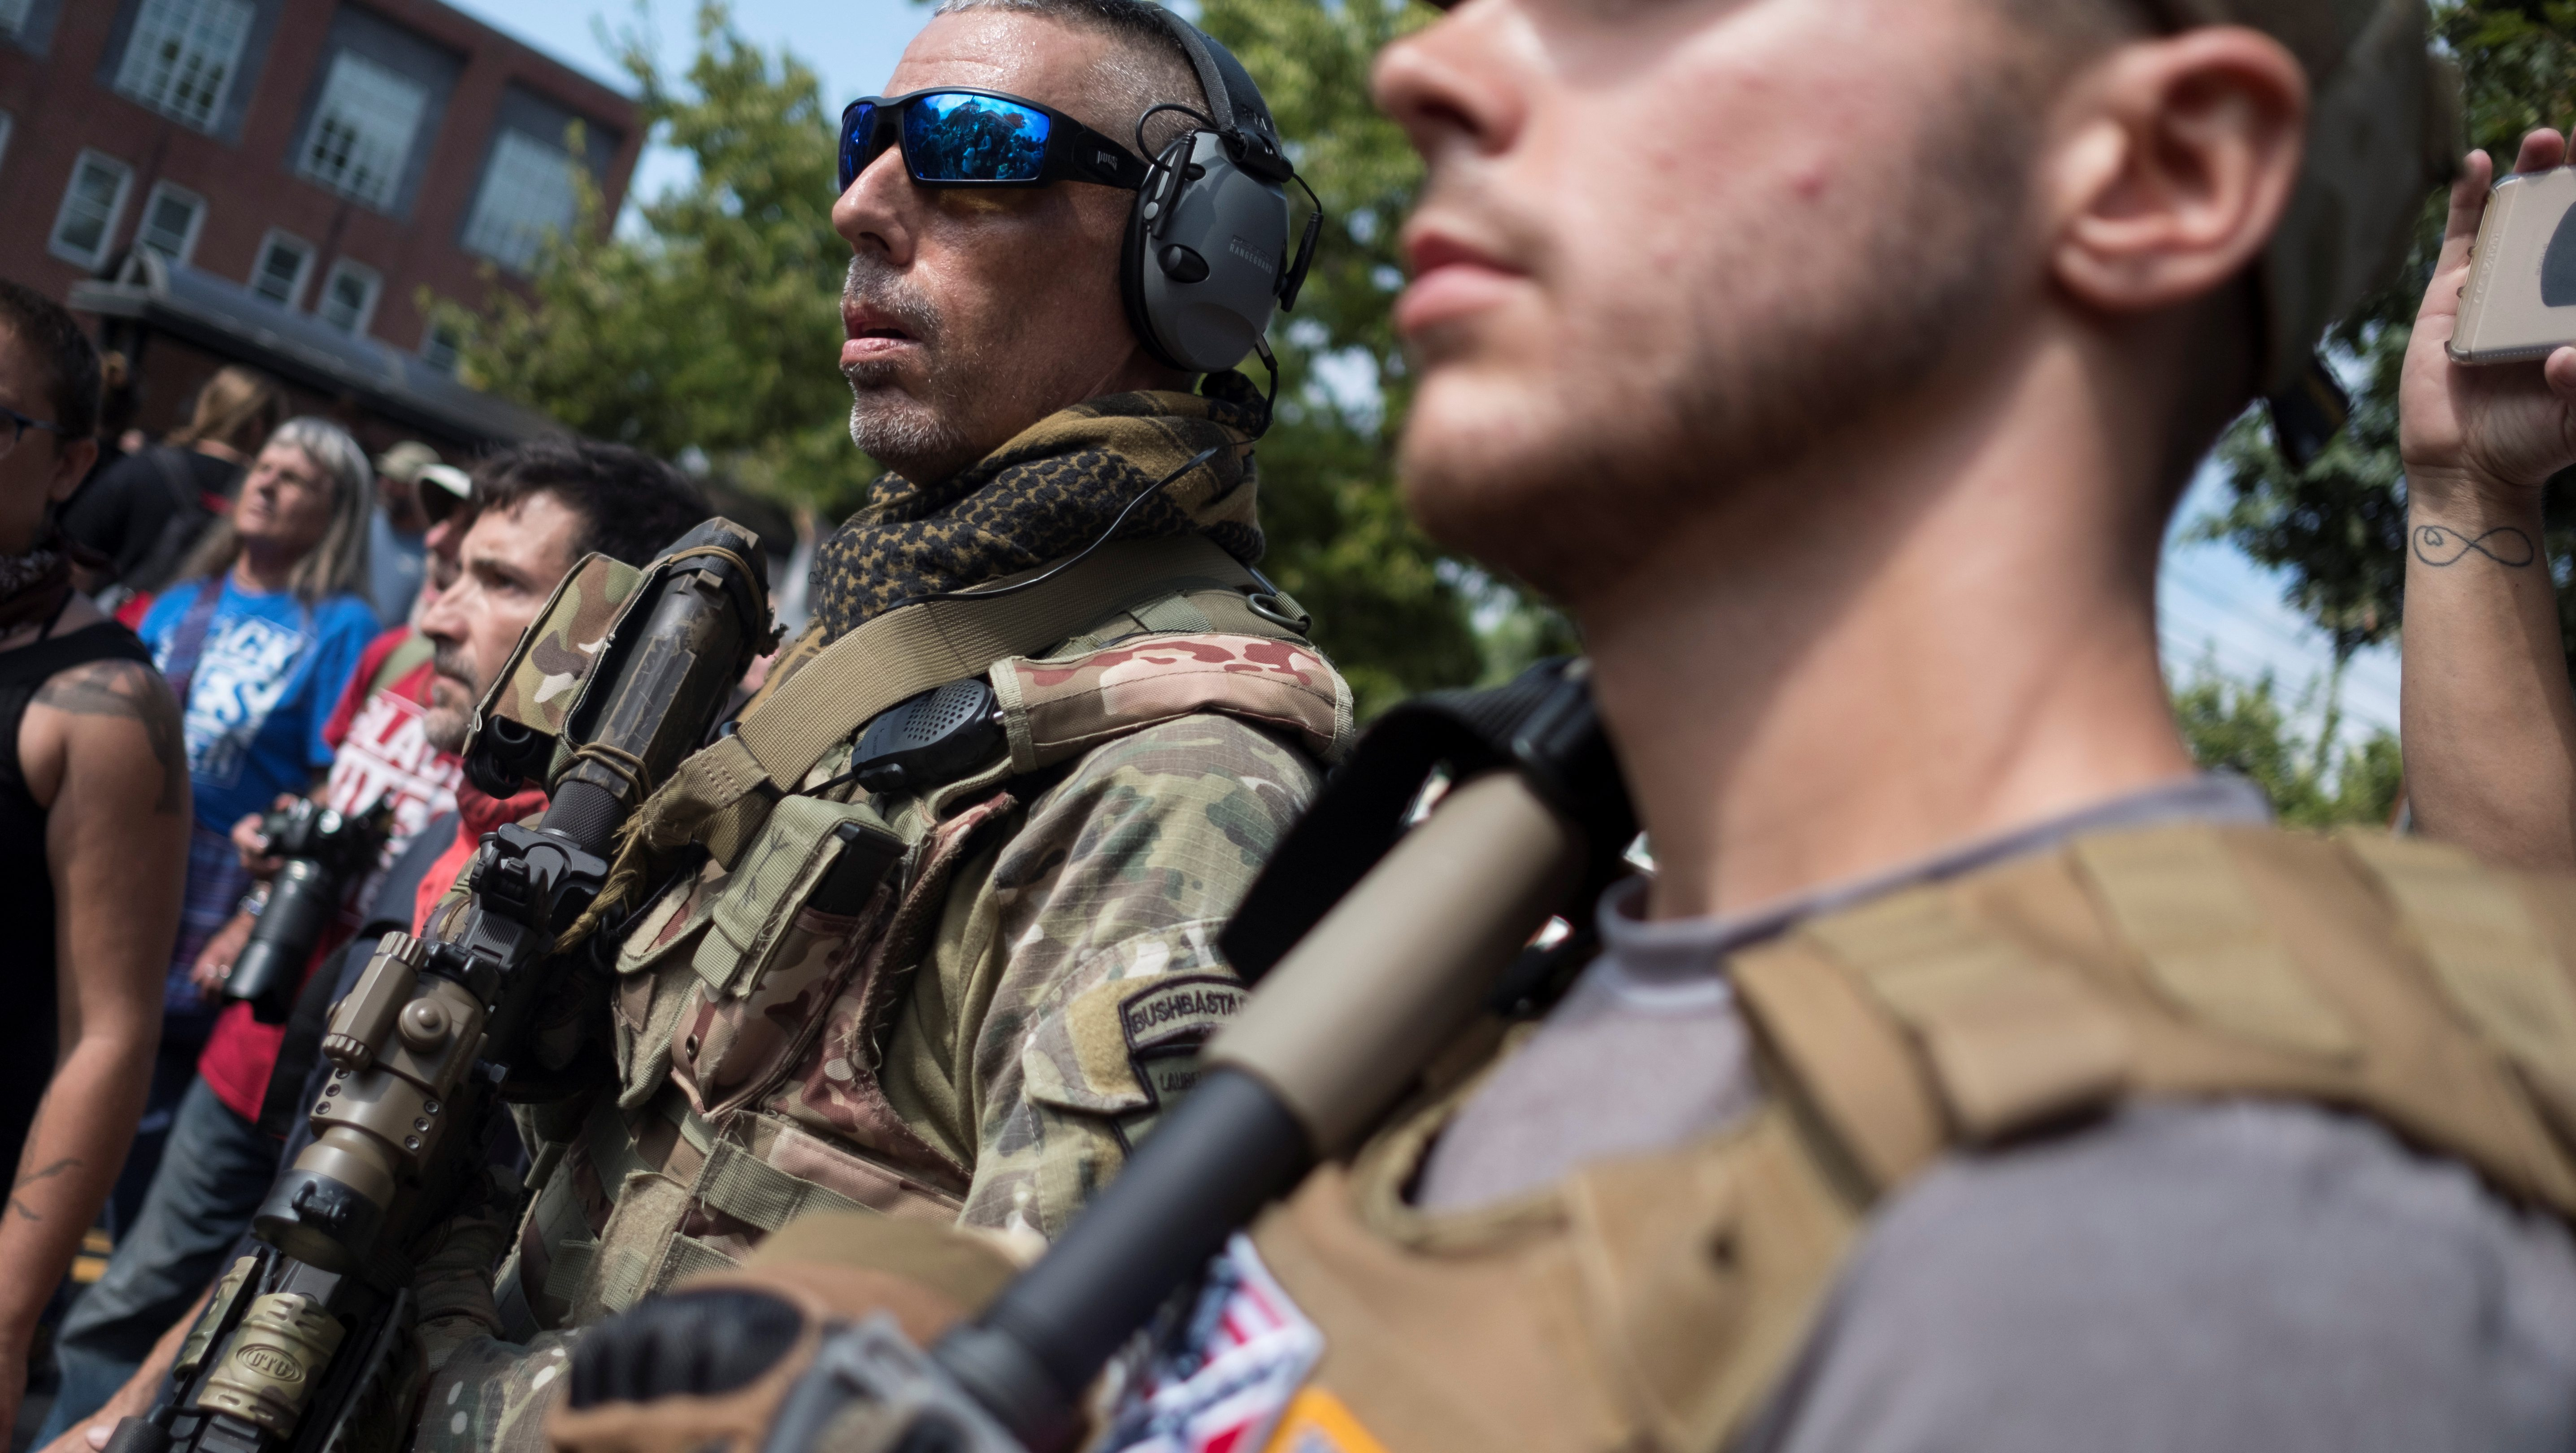 Who were the armed, camouflaged men in Charlottesville who